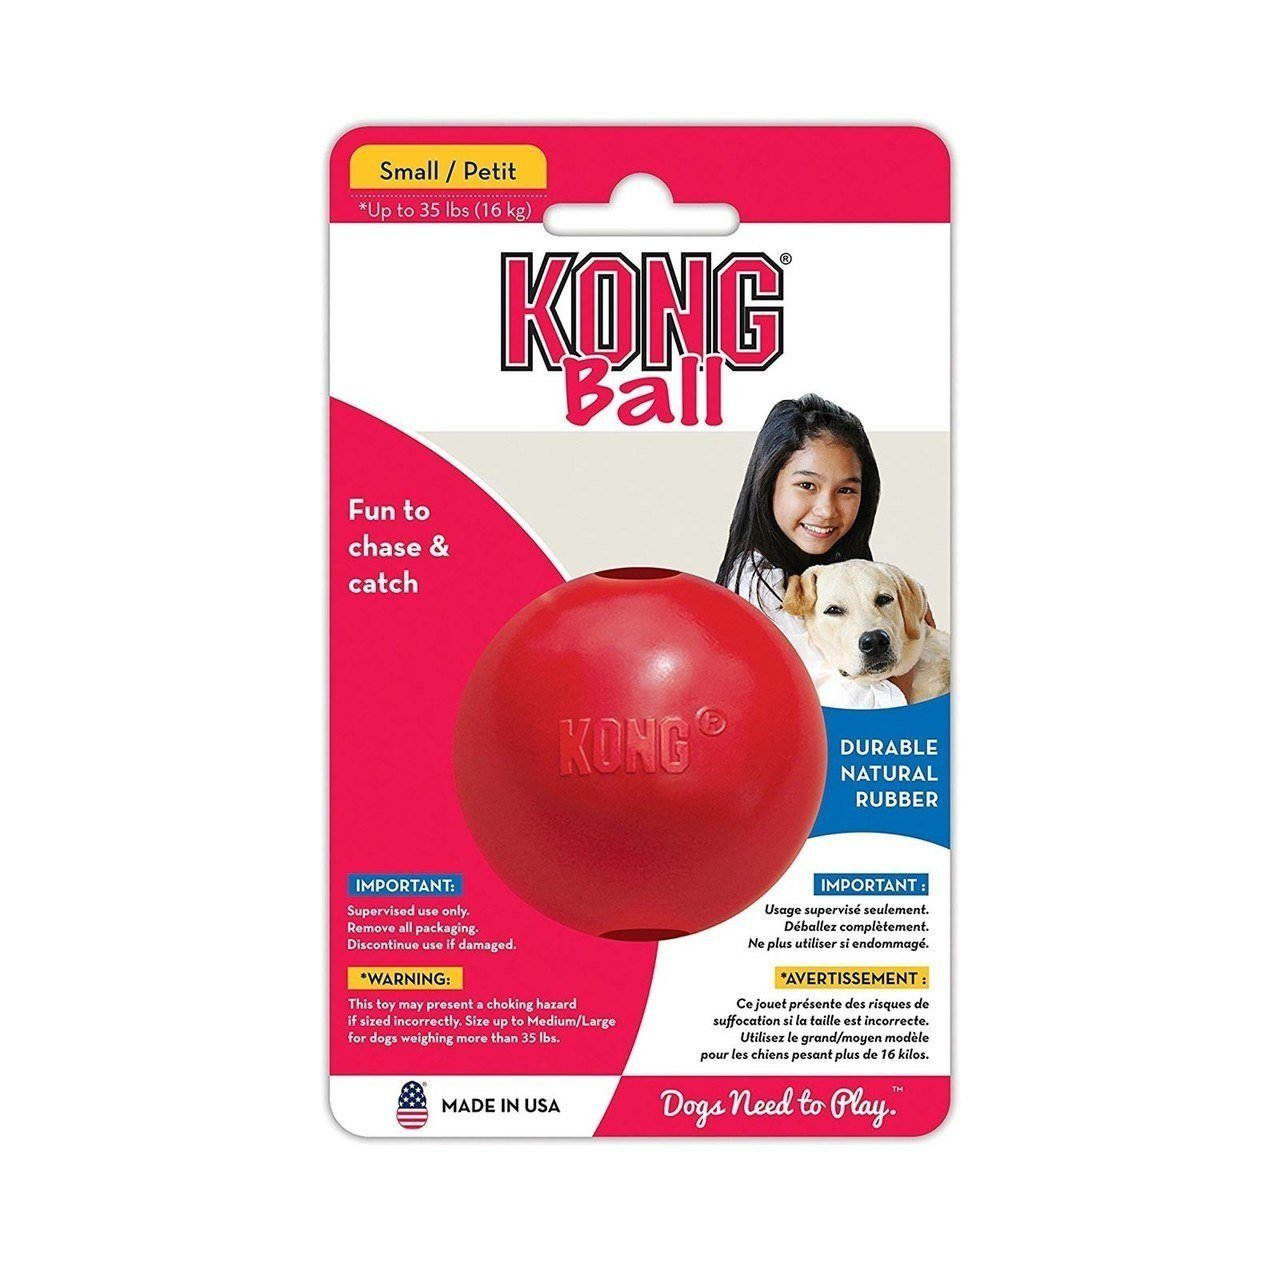 KONG Dog Ball_Red. Small